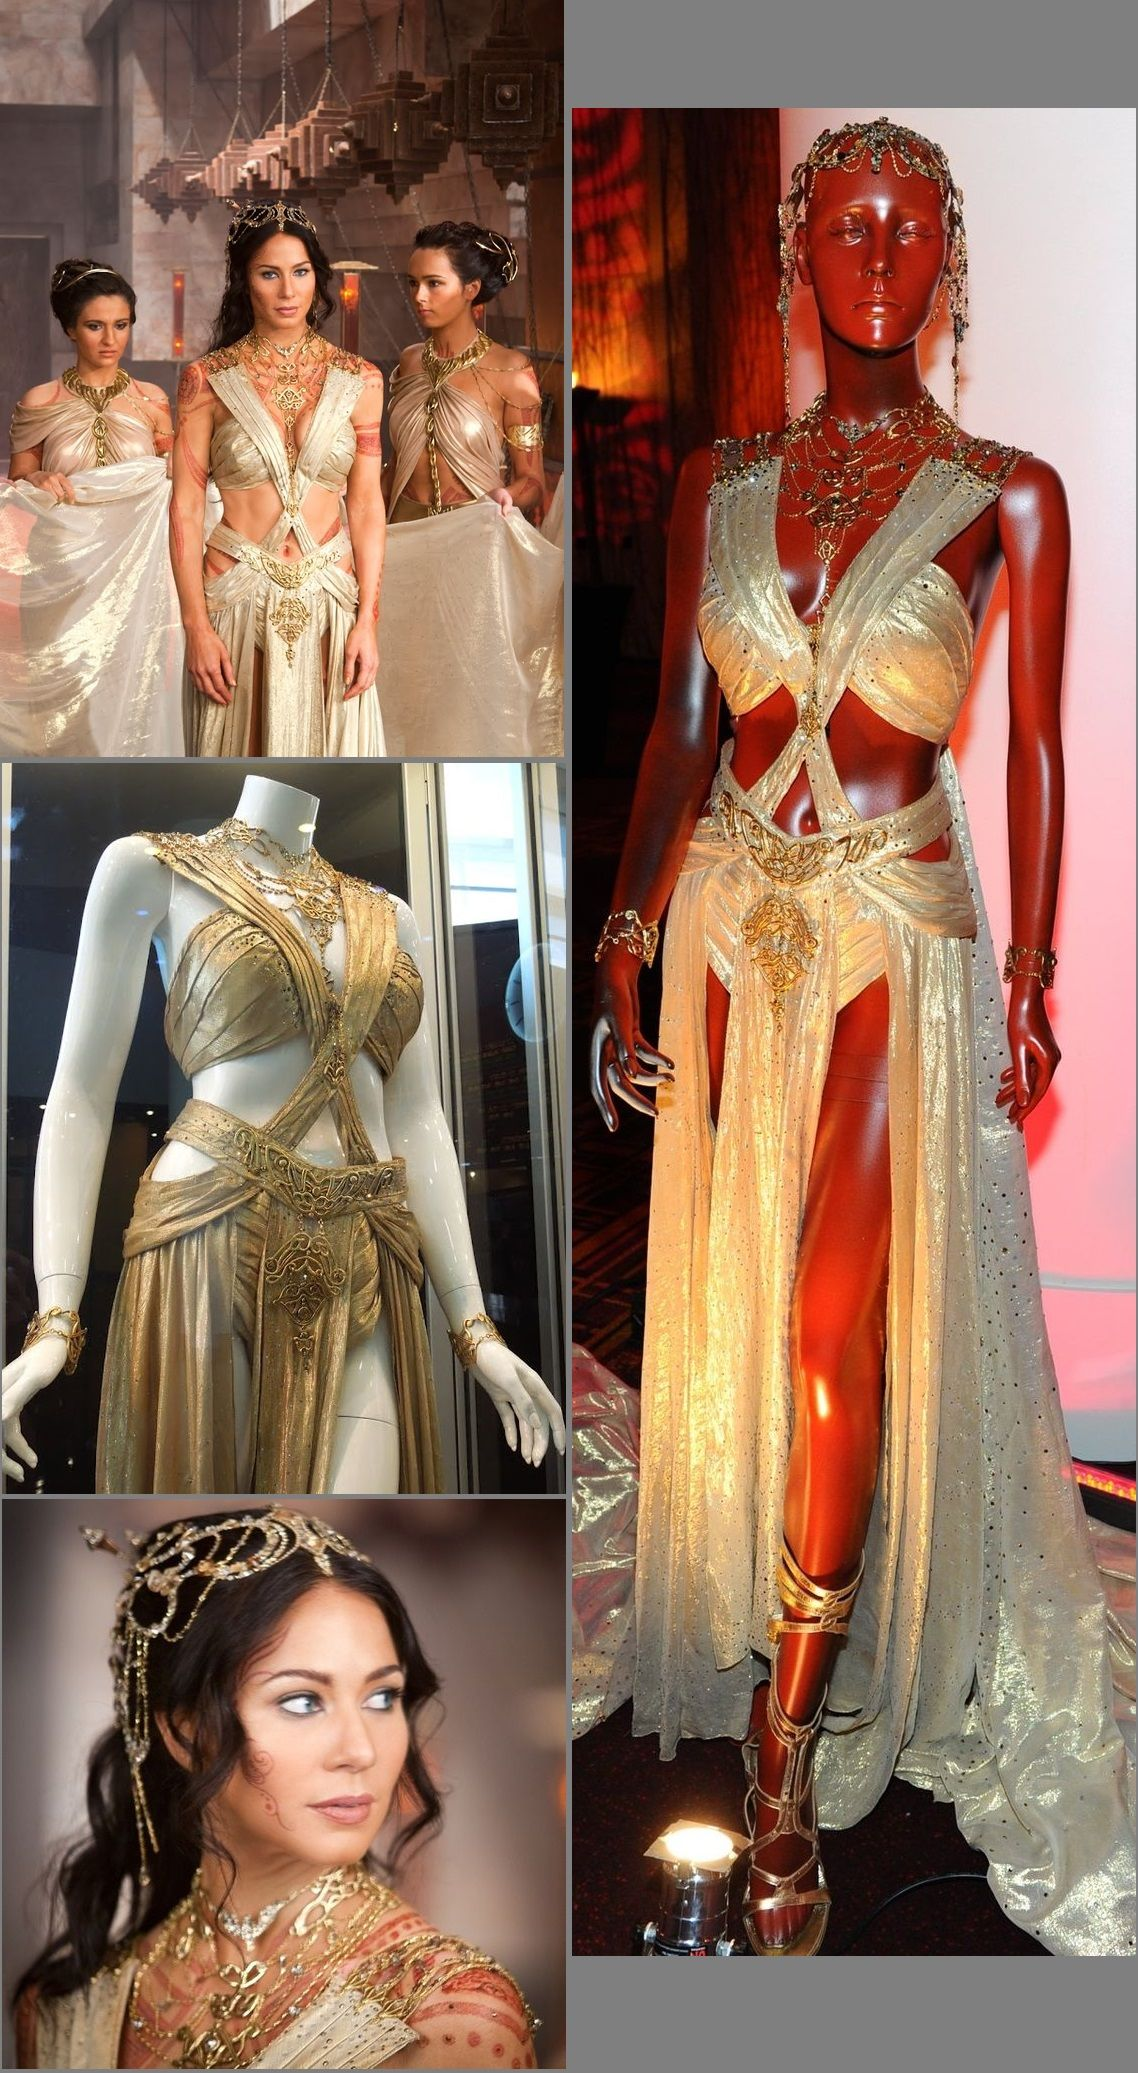 Dejah Thoris From John Carter Of Mars Portrayed By Lynn Collins John Carter Of Mars Lynn Collins Formal Dresses Long